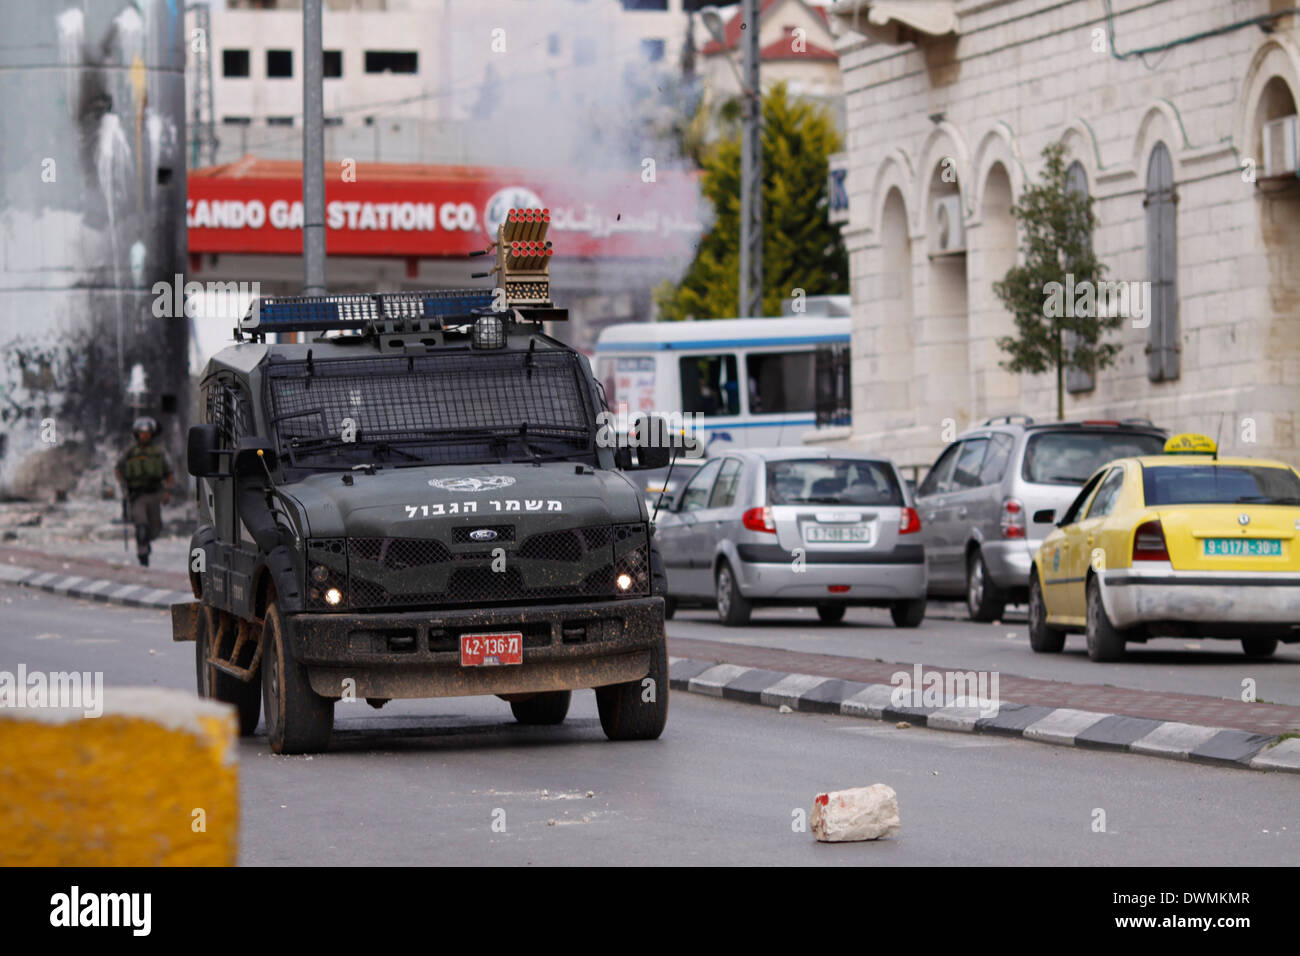 Israeli border police jeep broke into the streets of Bethlehem shooting tear gas at Palestinians, during clashes. - Stock Image